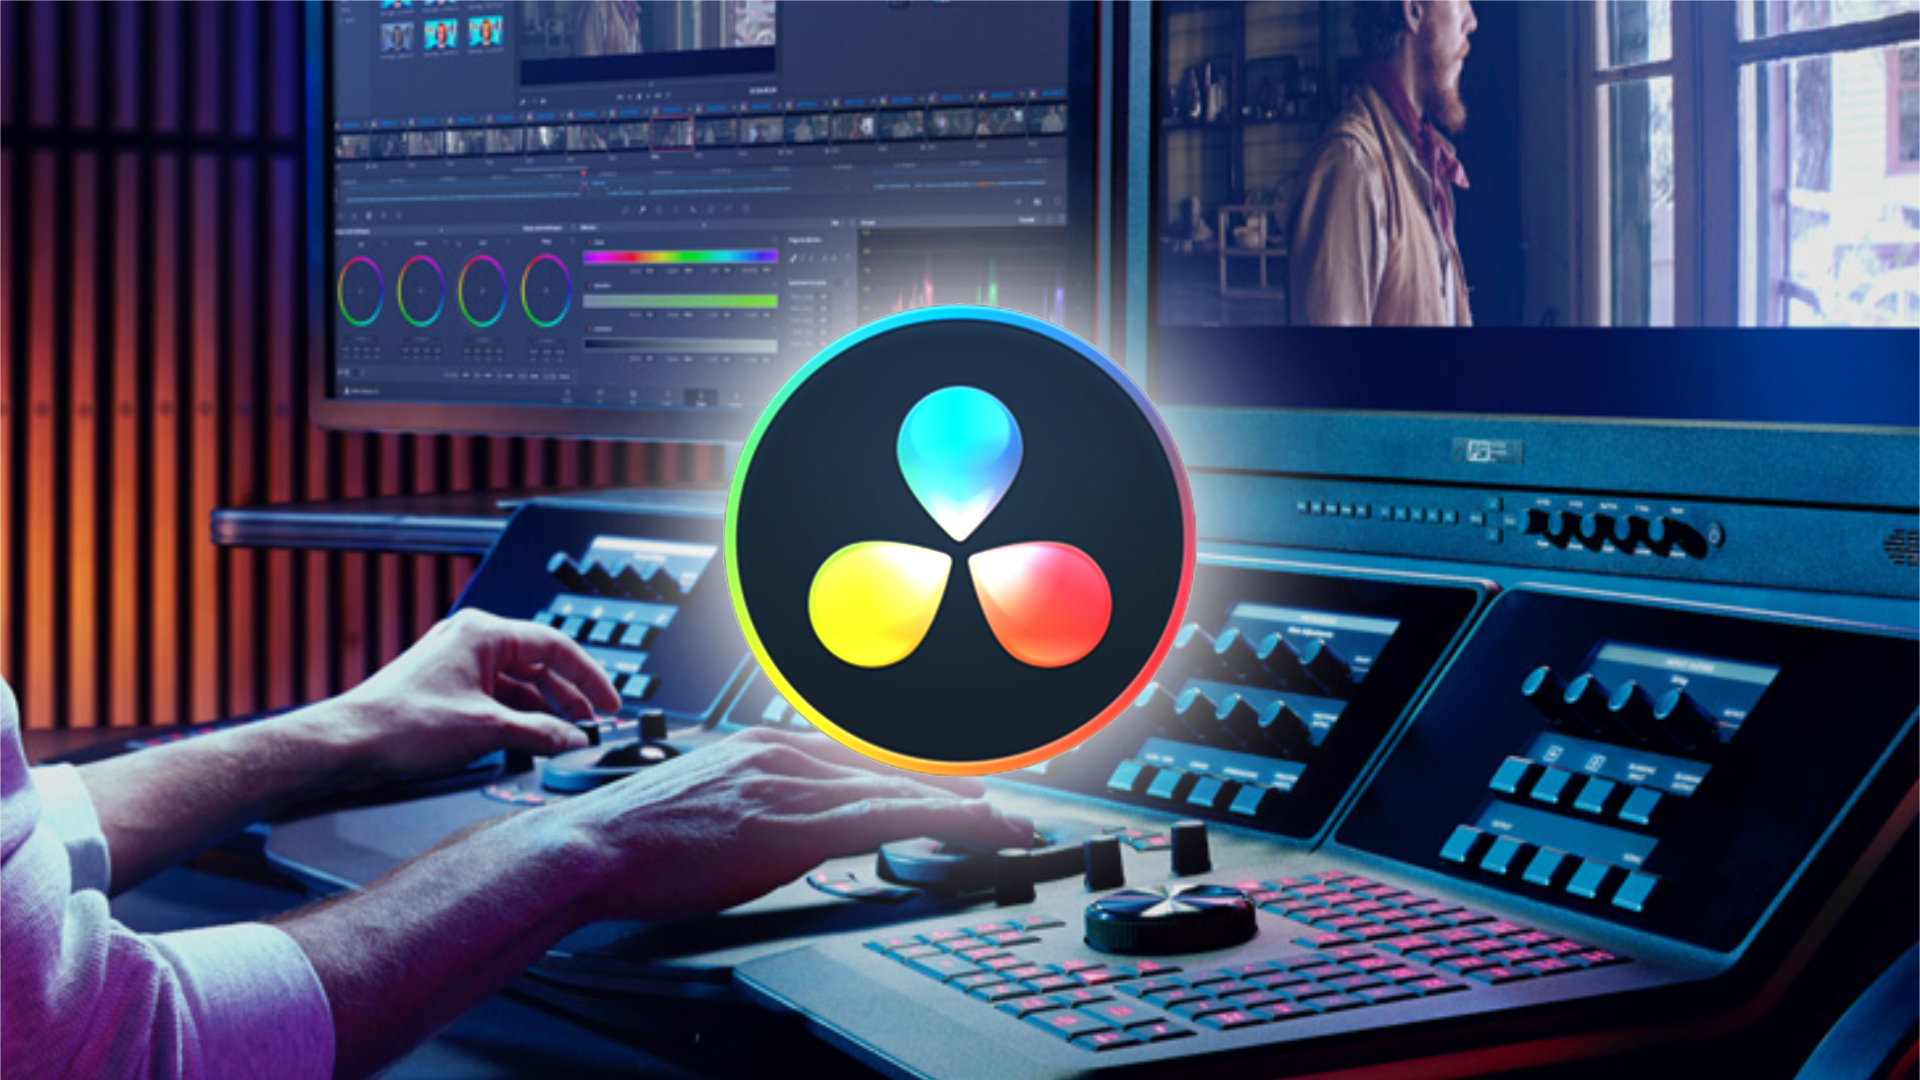 Blackmagic Design Davinci Resolve 16 2 3 Minor Update Big Impact Cined